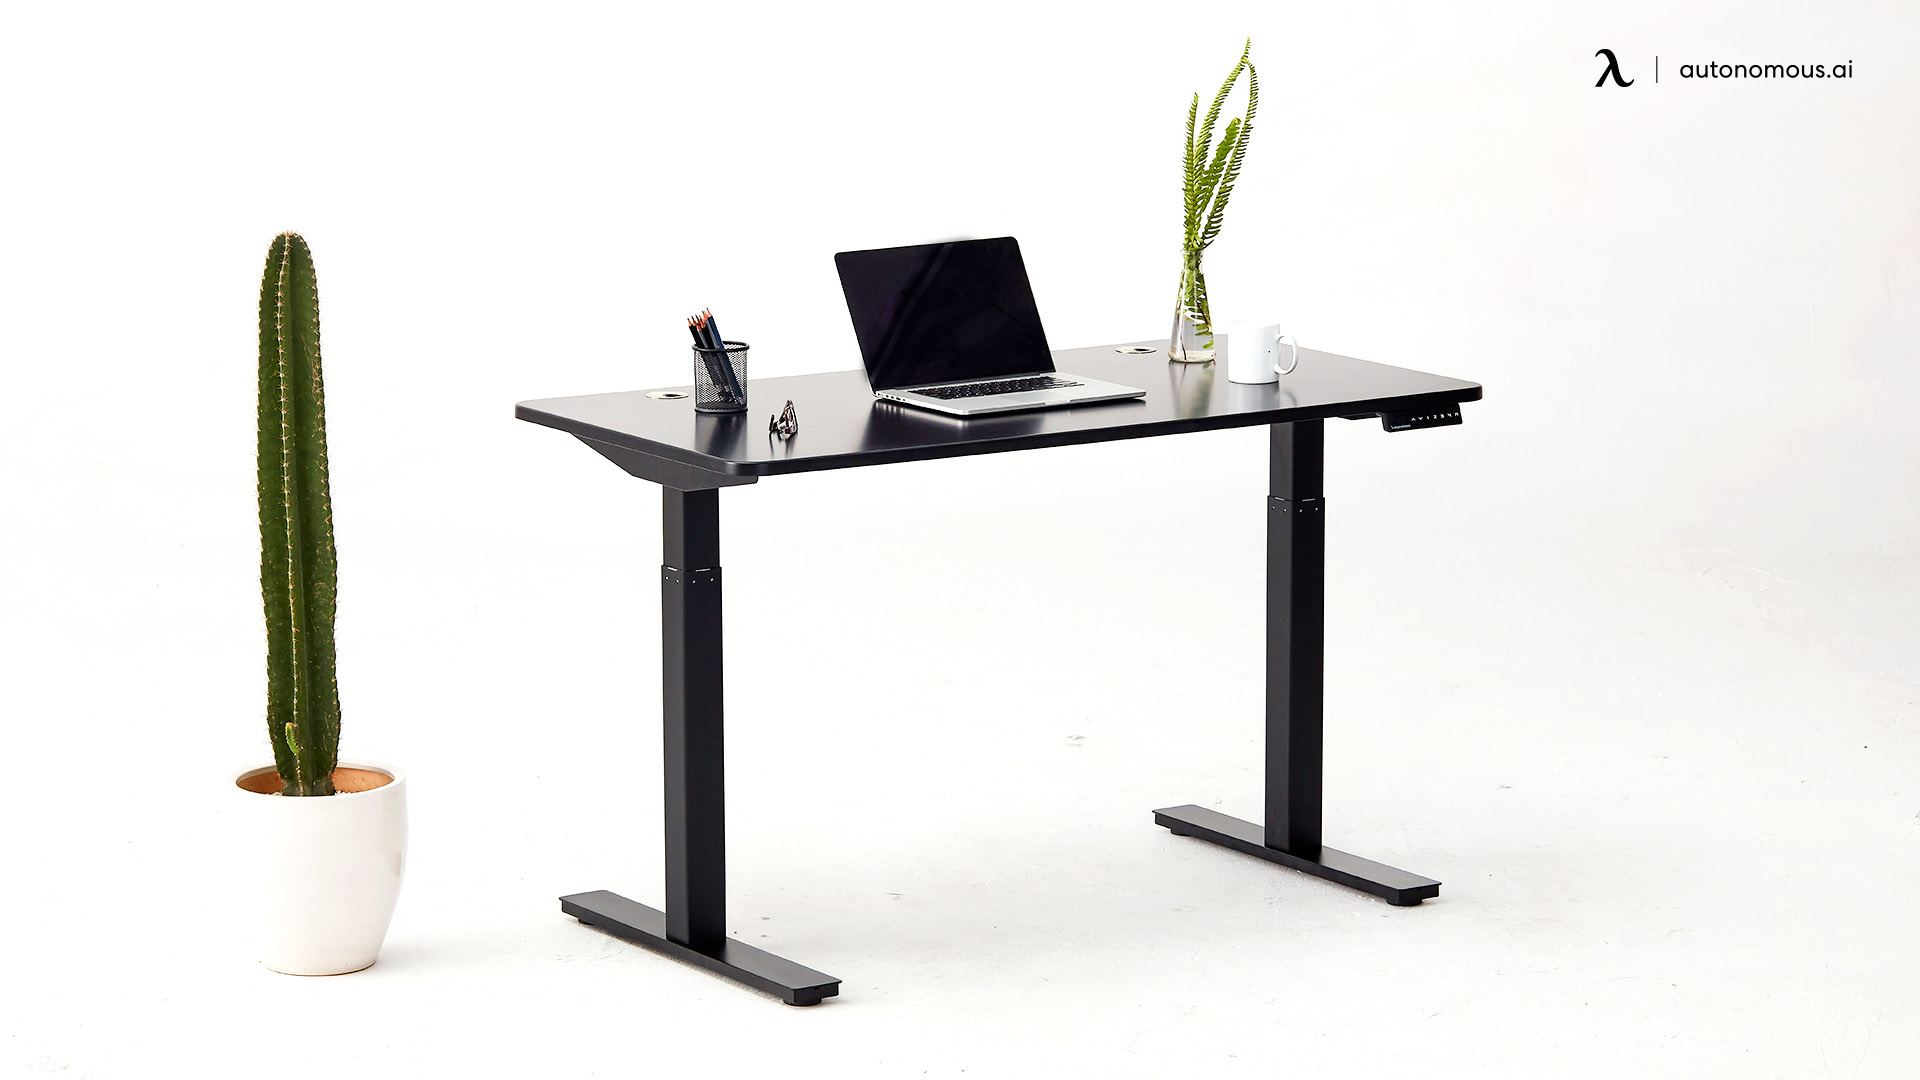 Best Office Desk Under $500 - Best for your Health